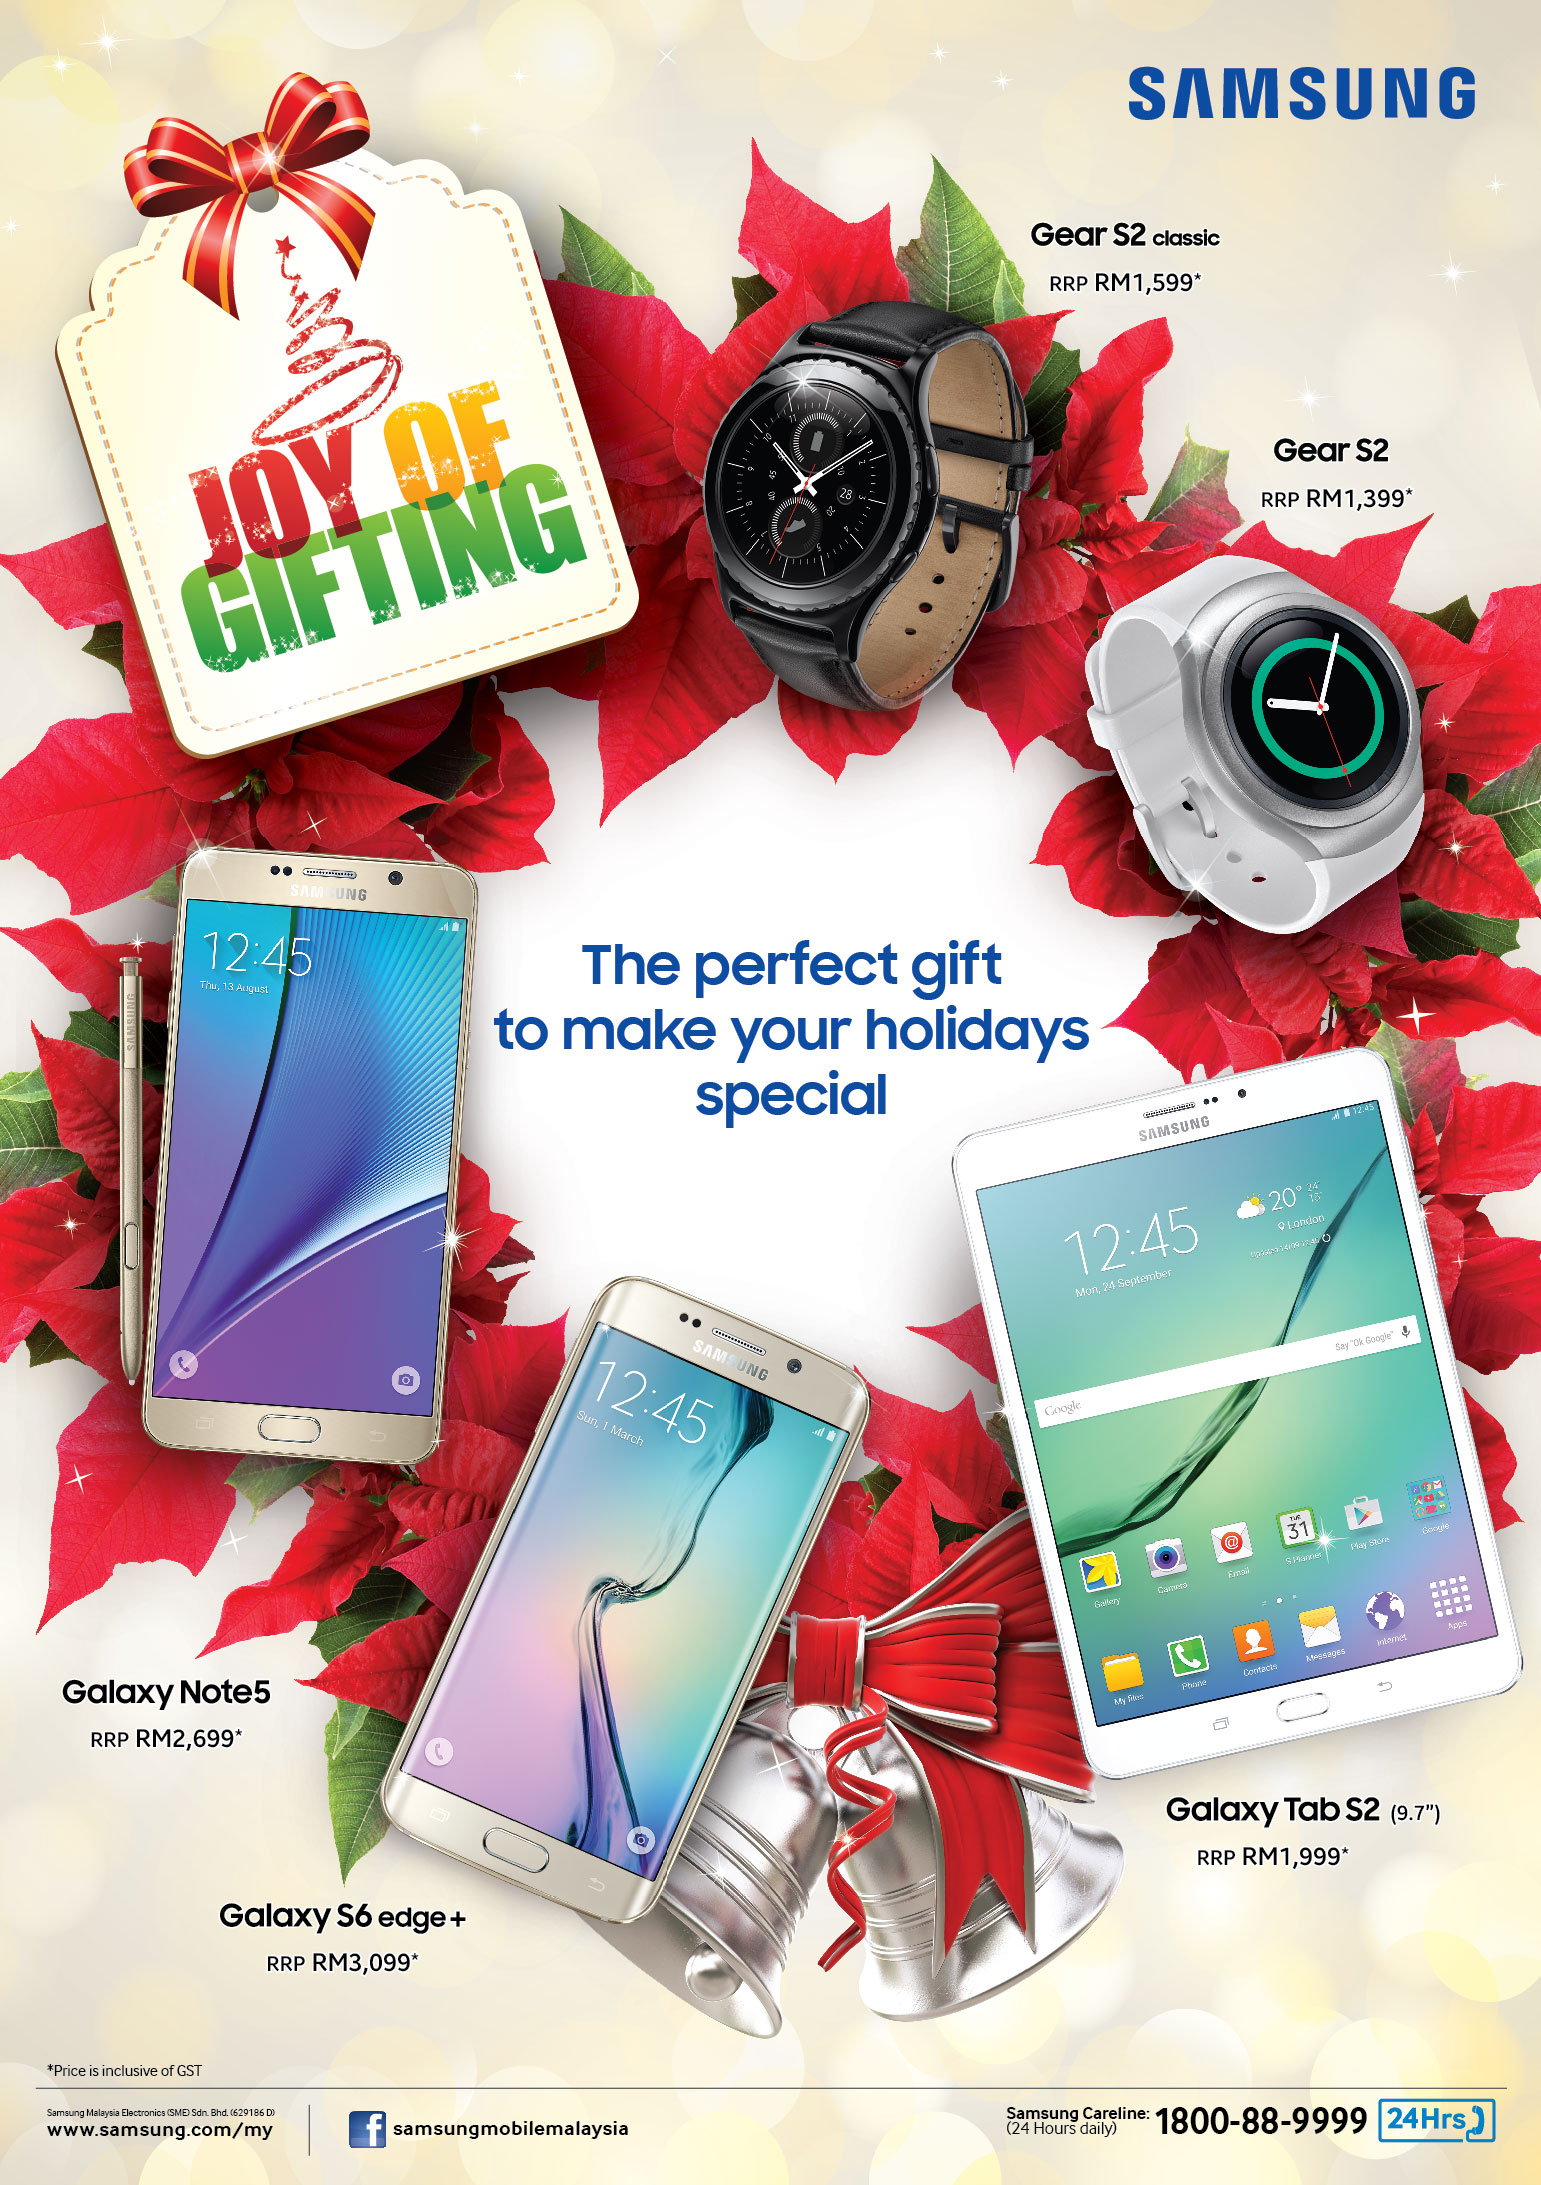 Image from Samsung Malaysia